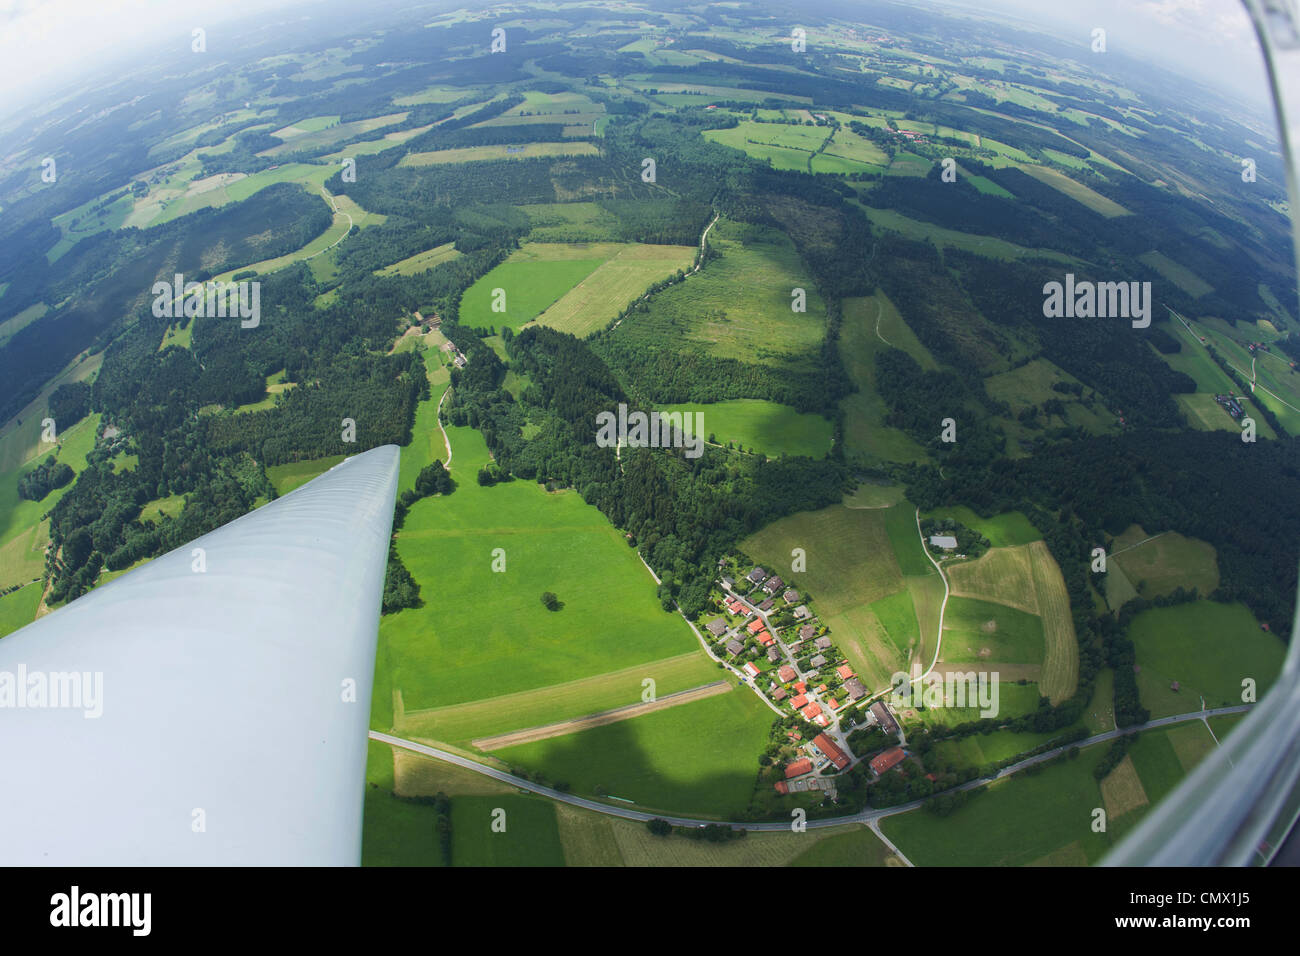 Germany, Bavaria, Bad Toelz, View of village and landscape from glider - Stock Image